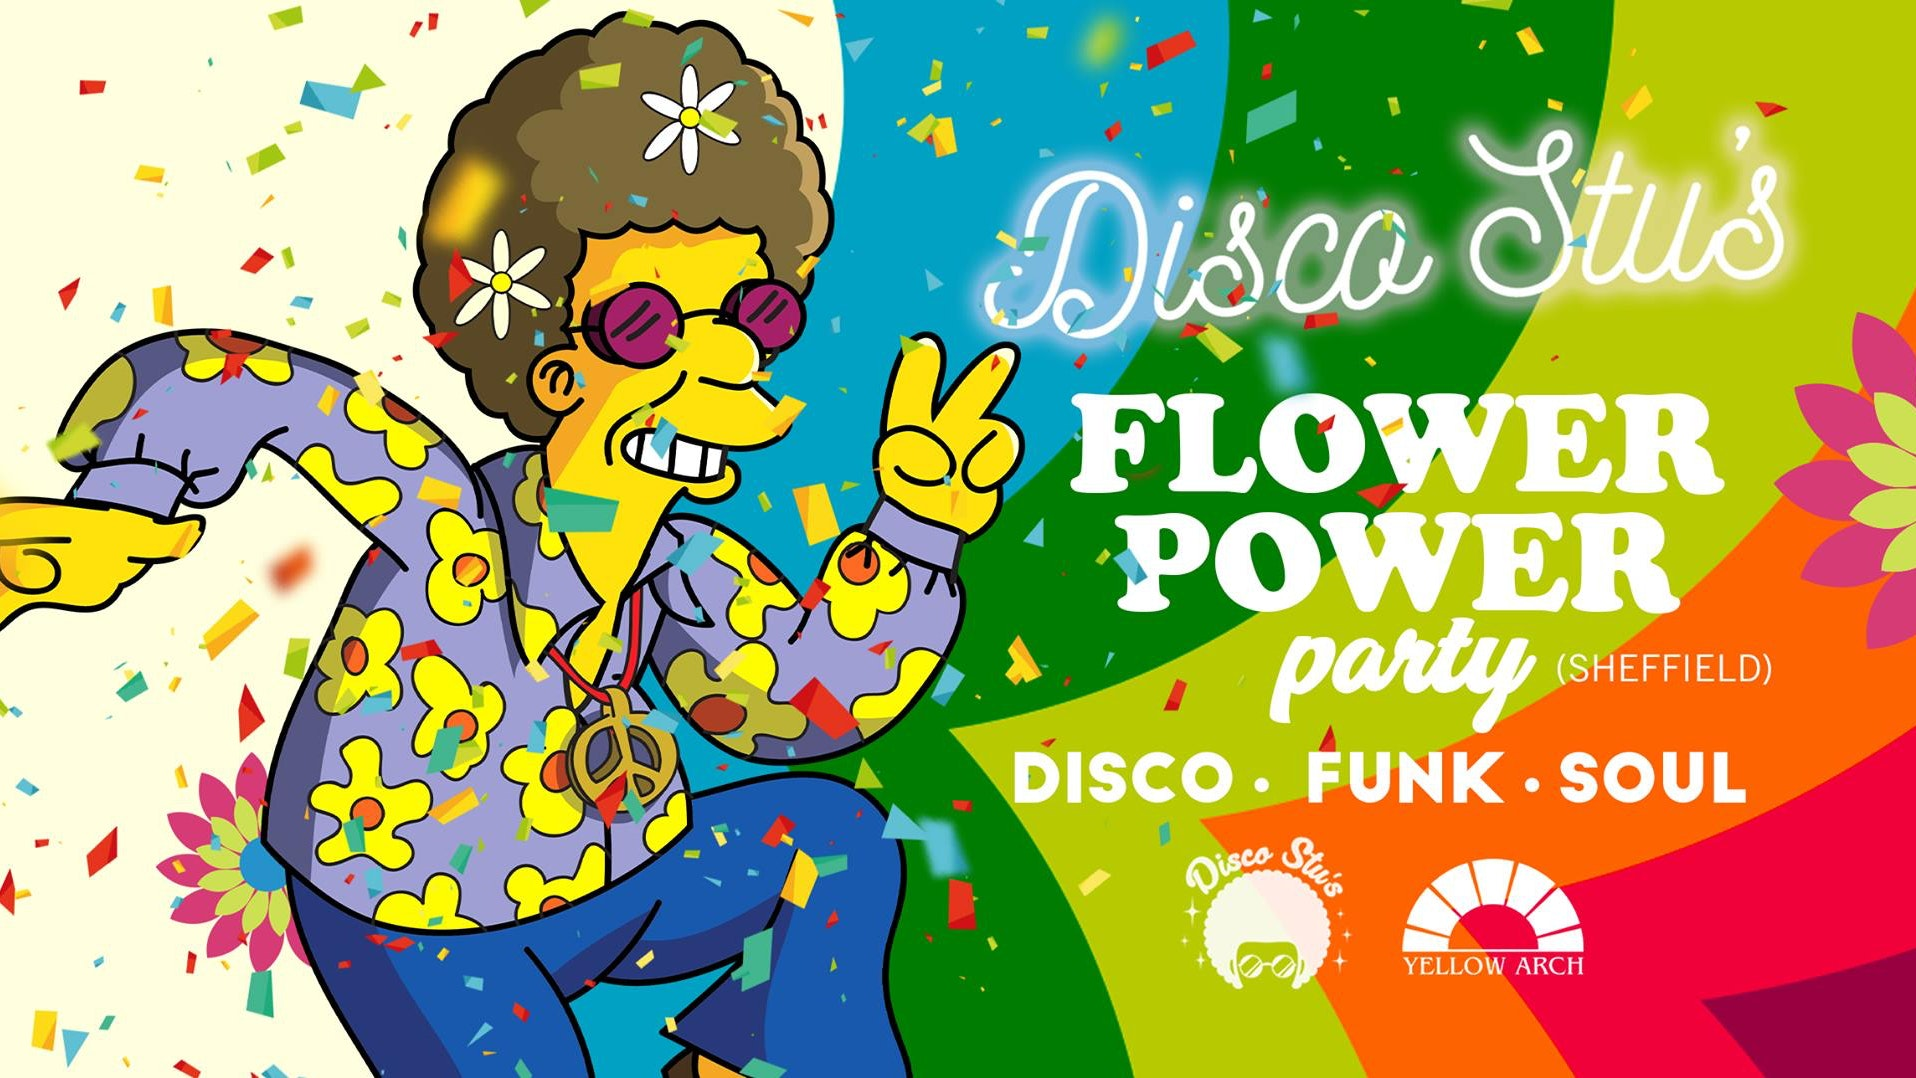 Disco Stu's – Flower Power Party